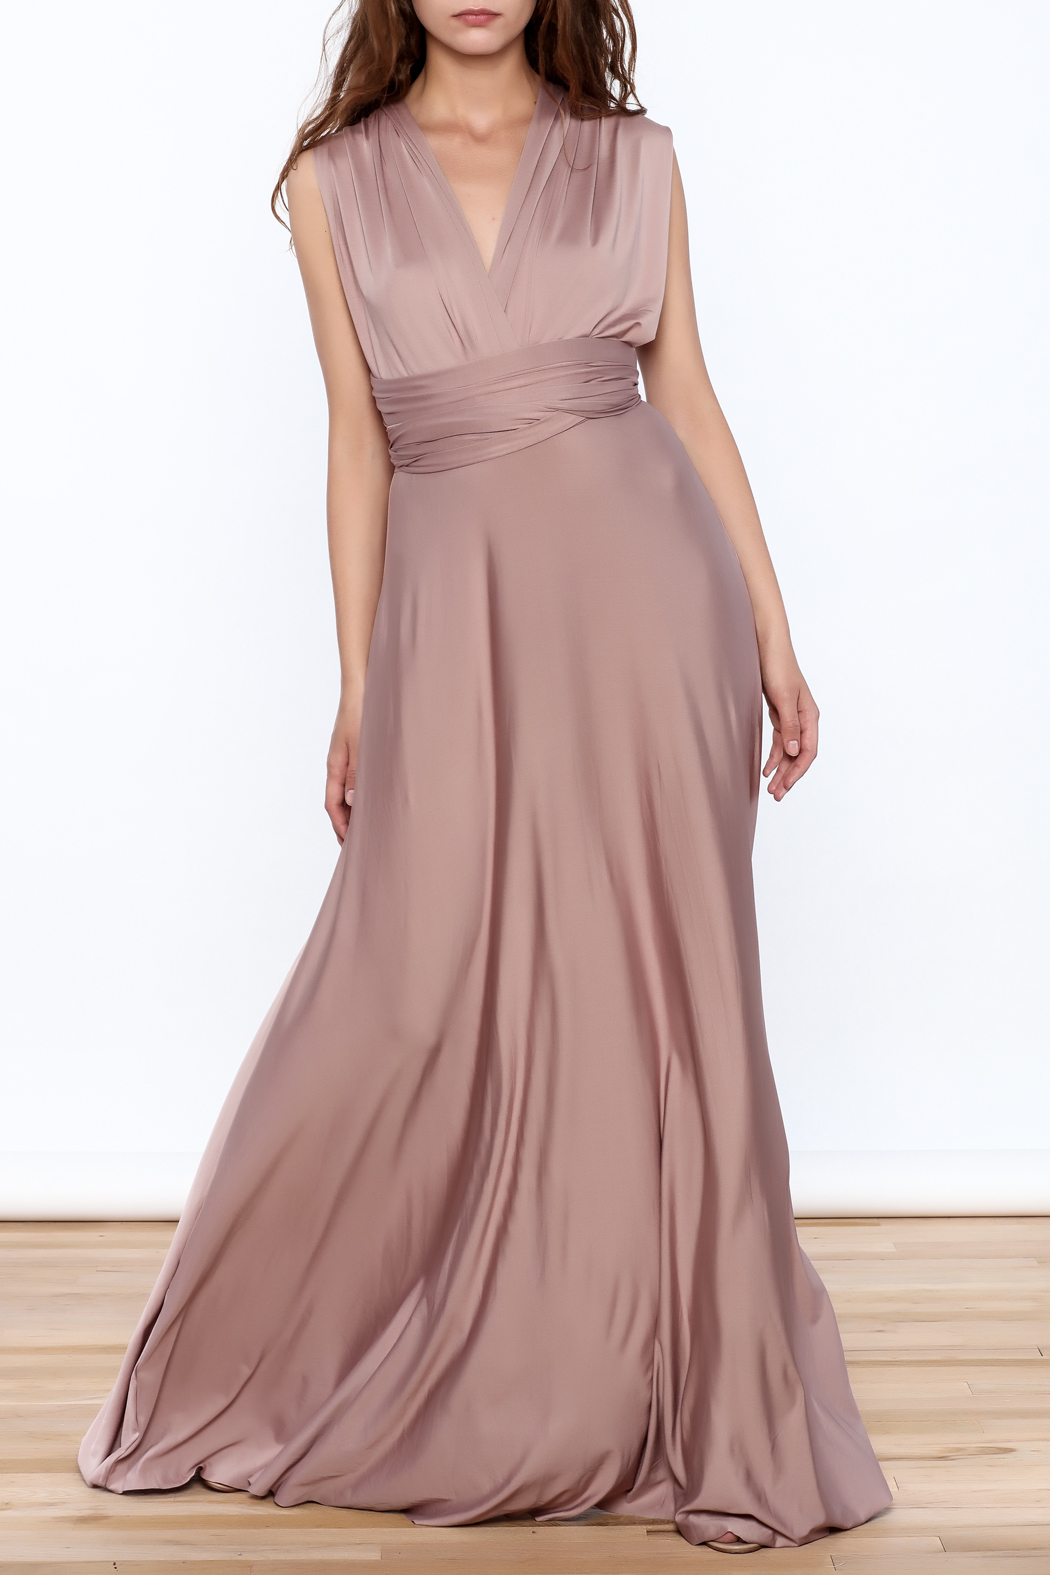 L'atiste Tie Up Maxi Dress - Main Image